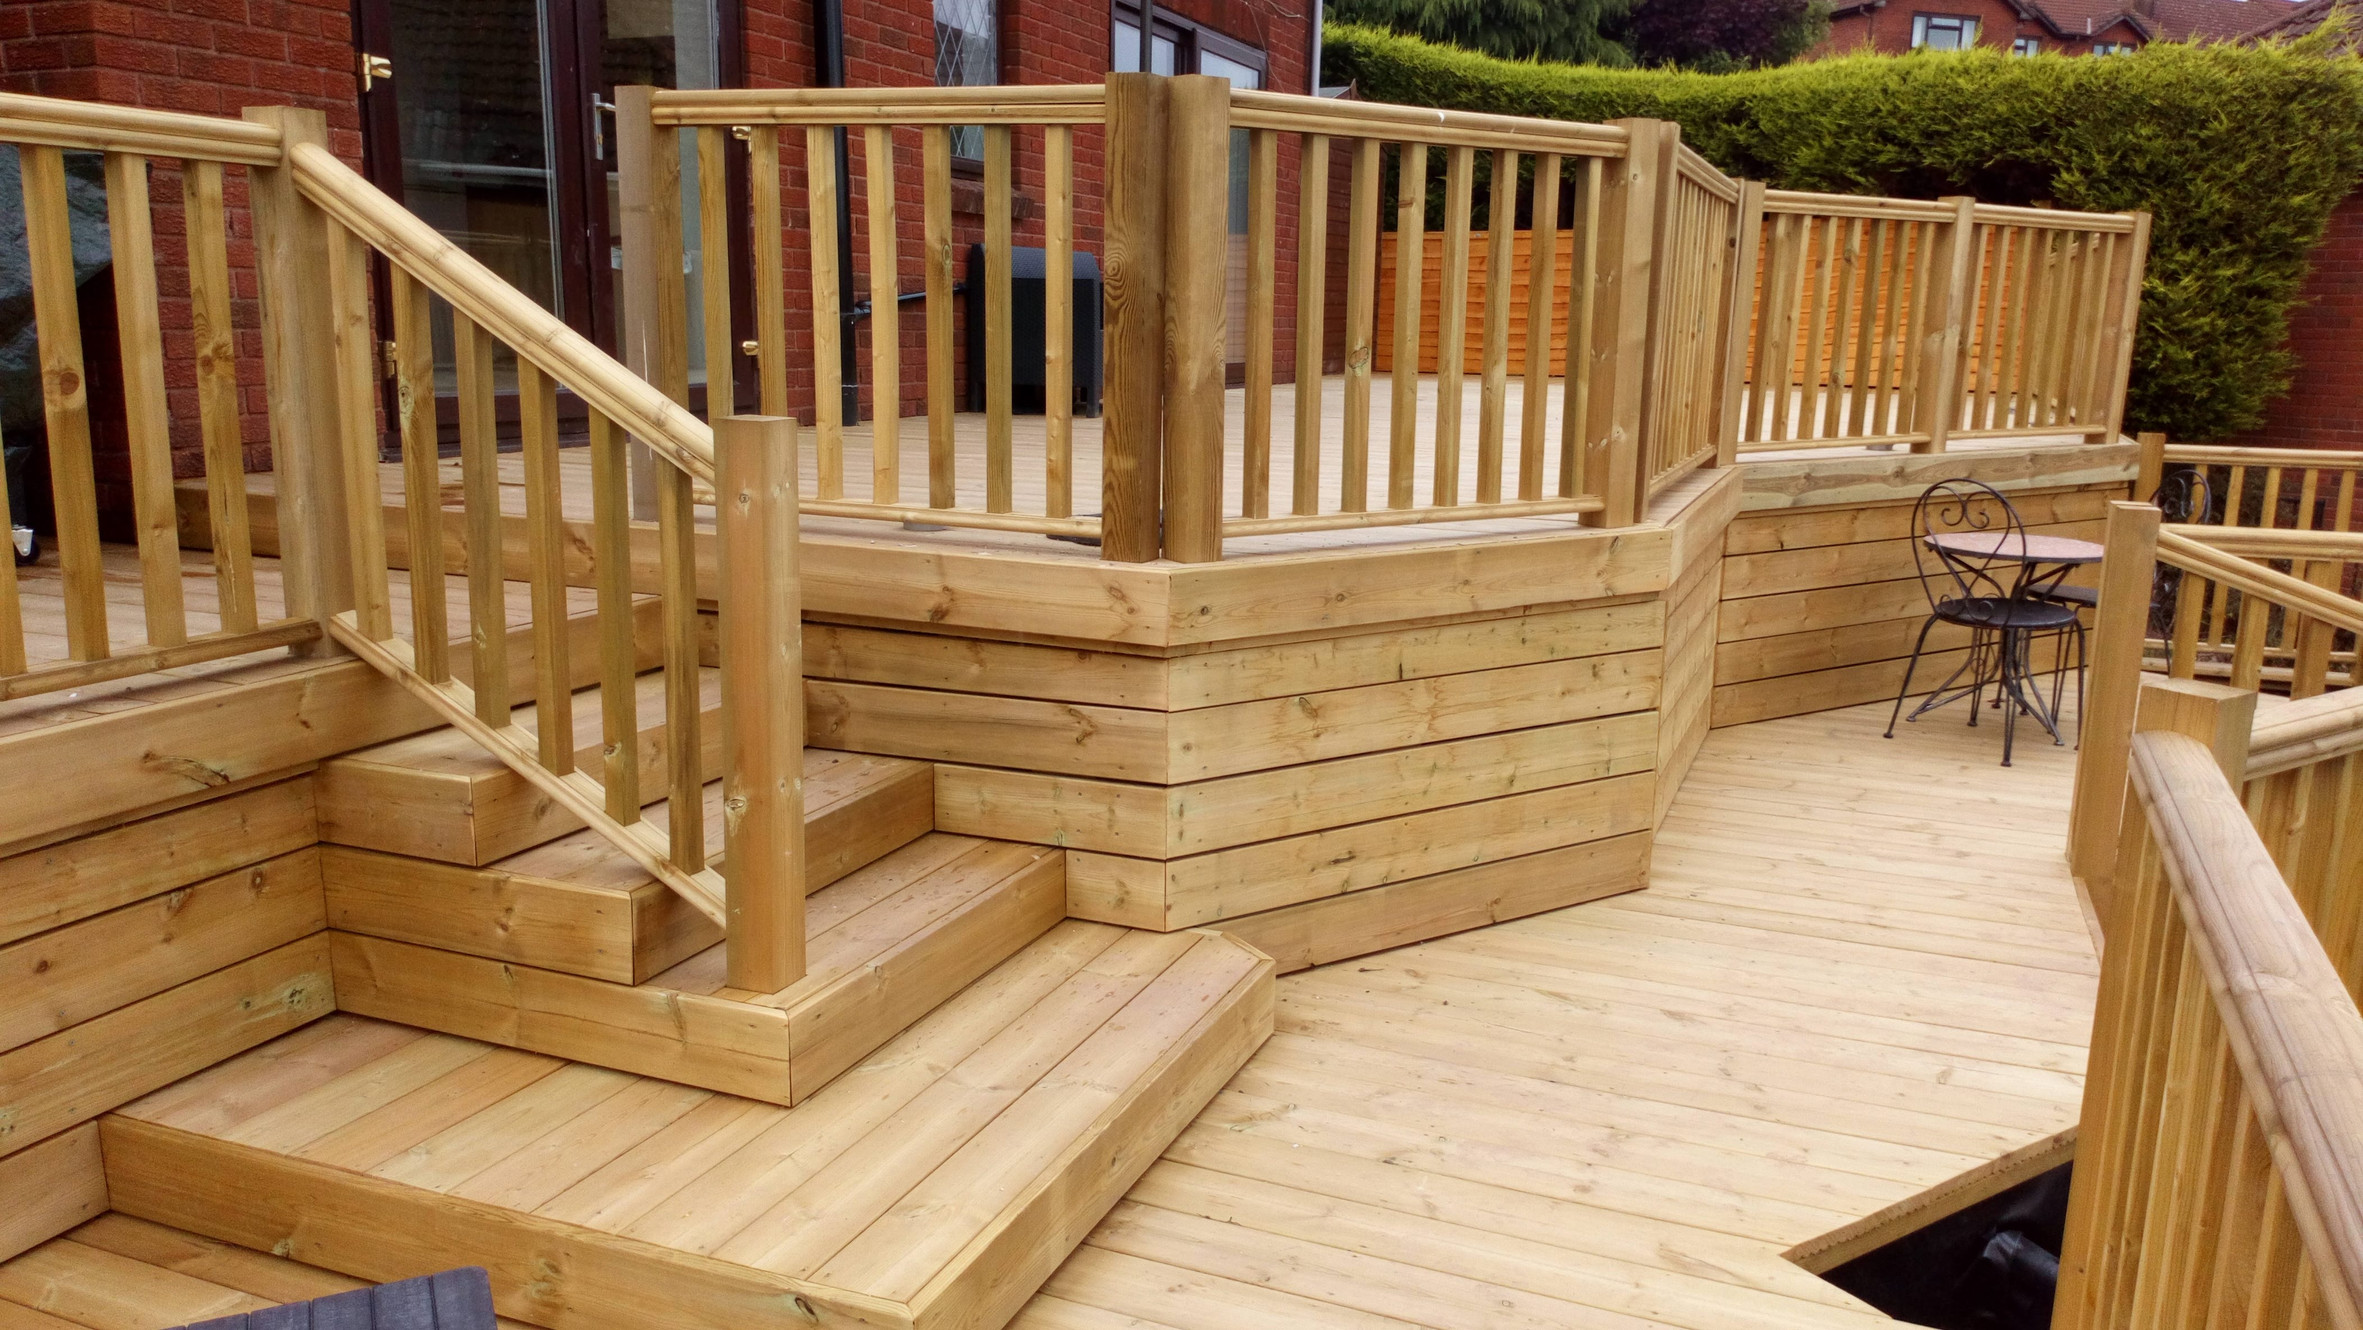 Bespoke Decks - Outdoor living spaces by Jaques - Newport ... on Bespoke Outdoor Living id=25027